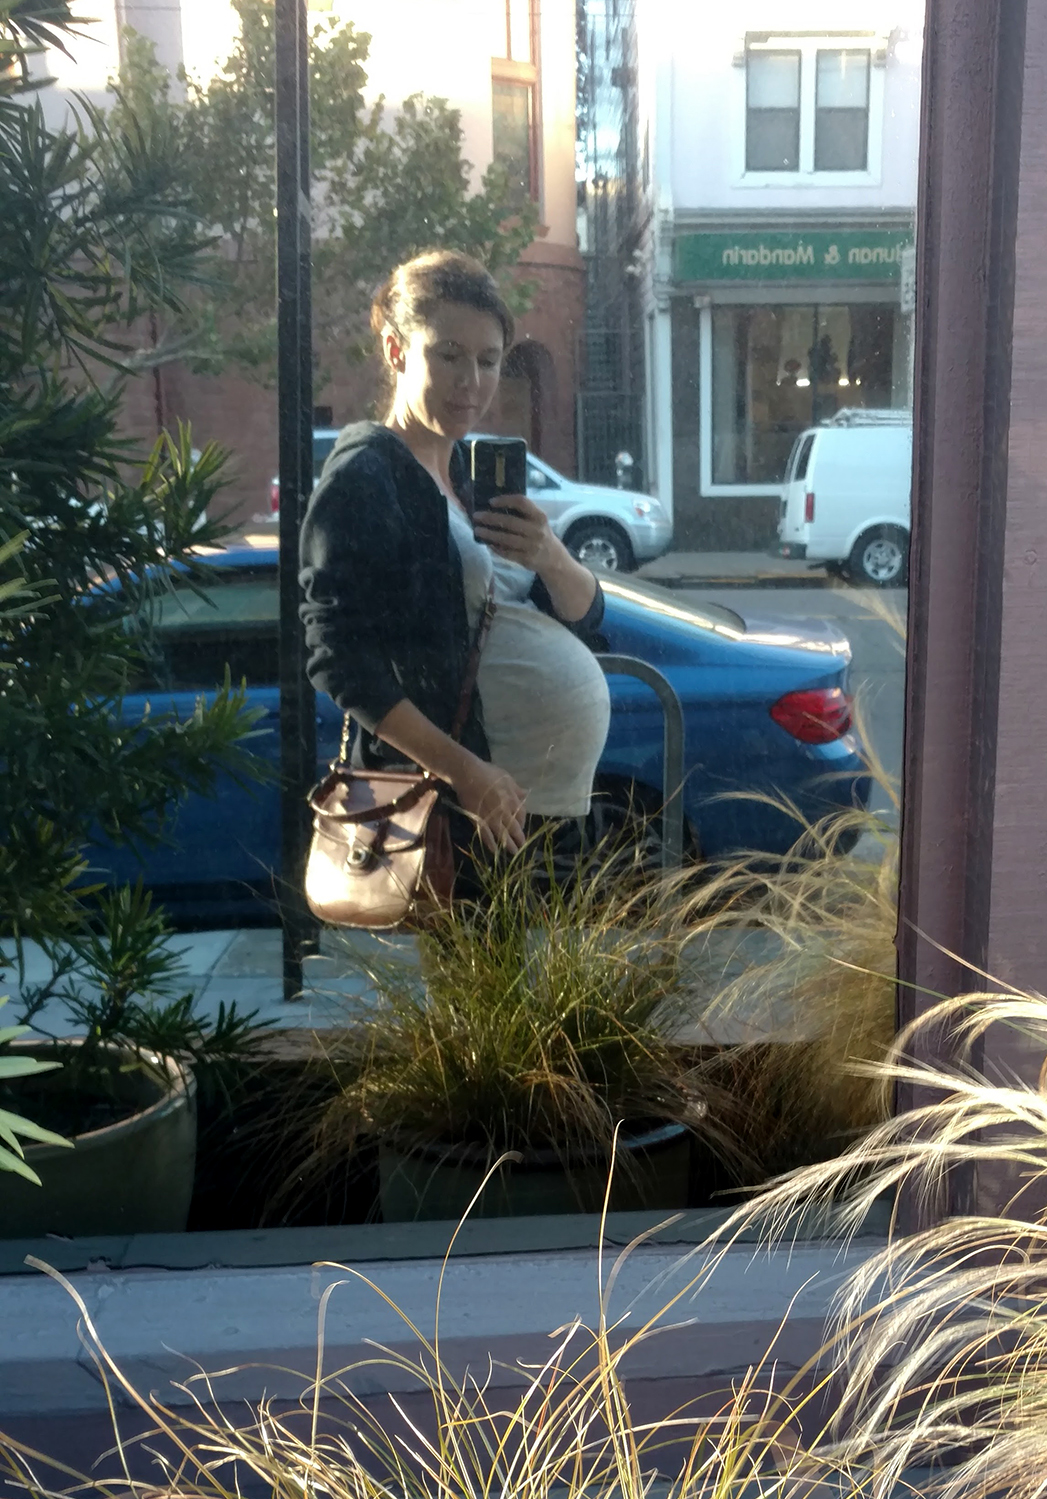 40 weeks waiting for baby